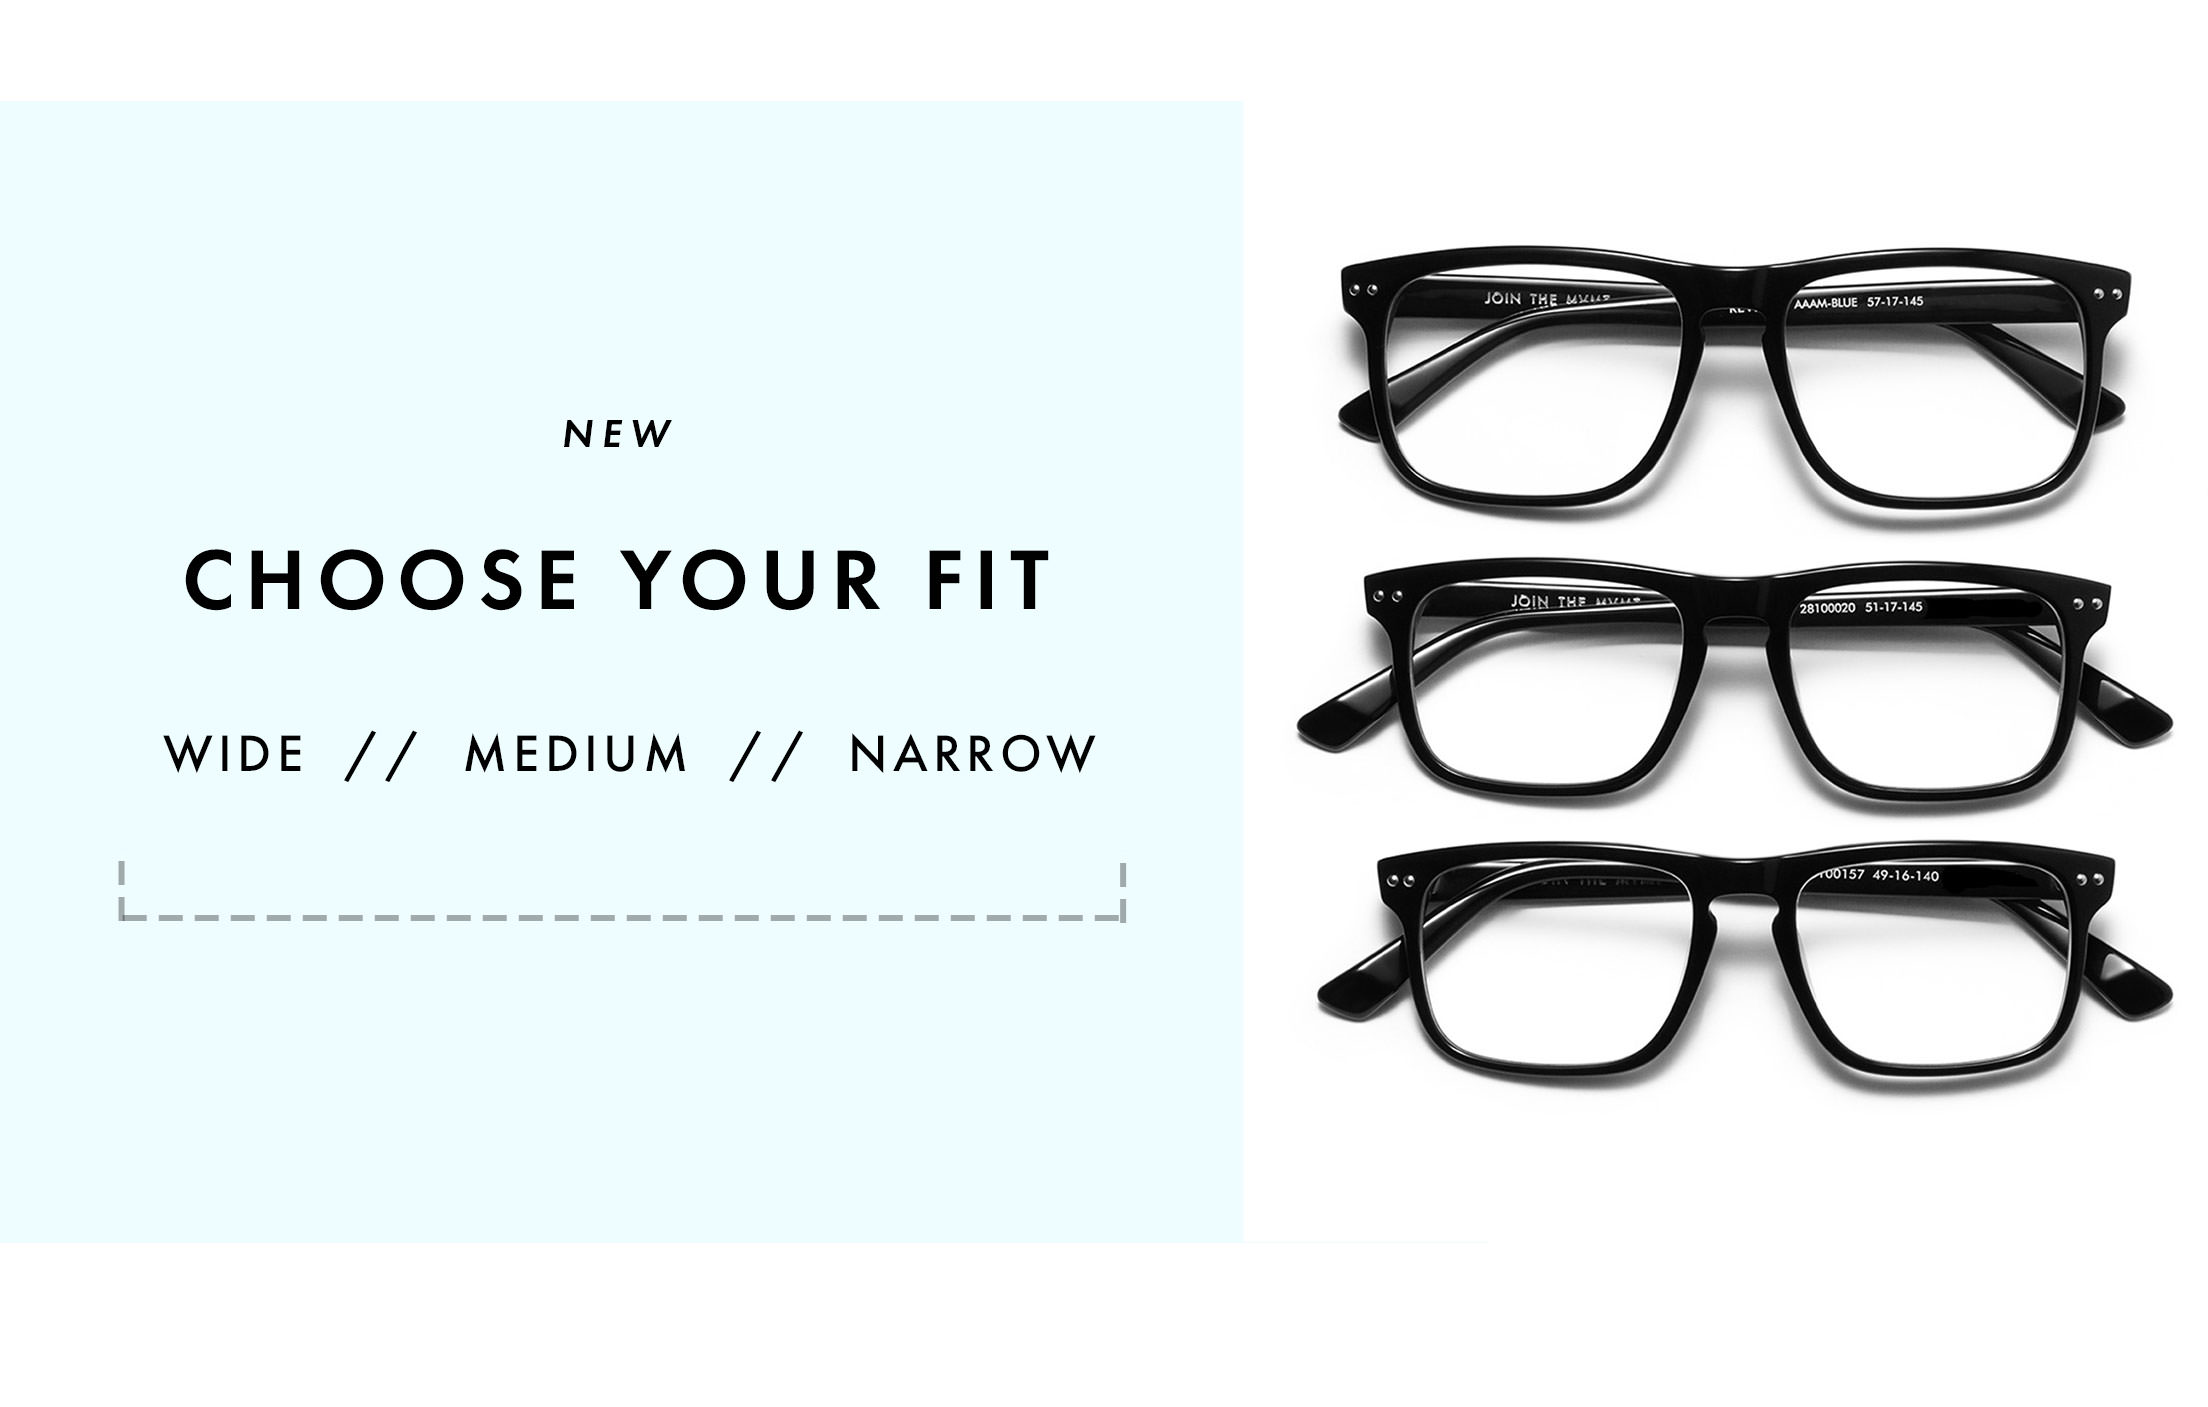 NEW CHOOSE YOUR FIT: WIDE // MEDIUM // NARROW